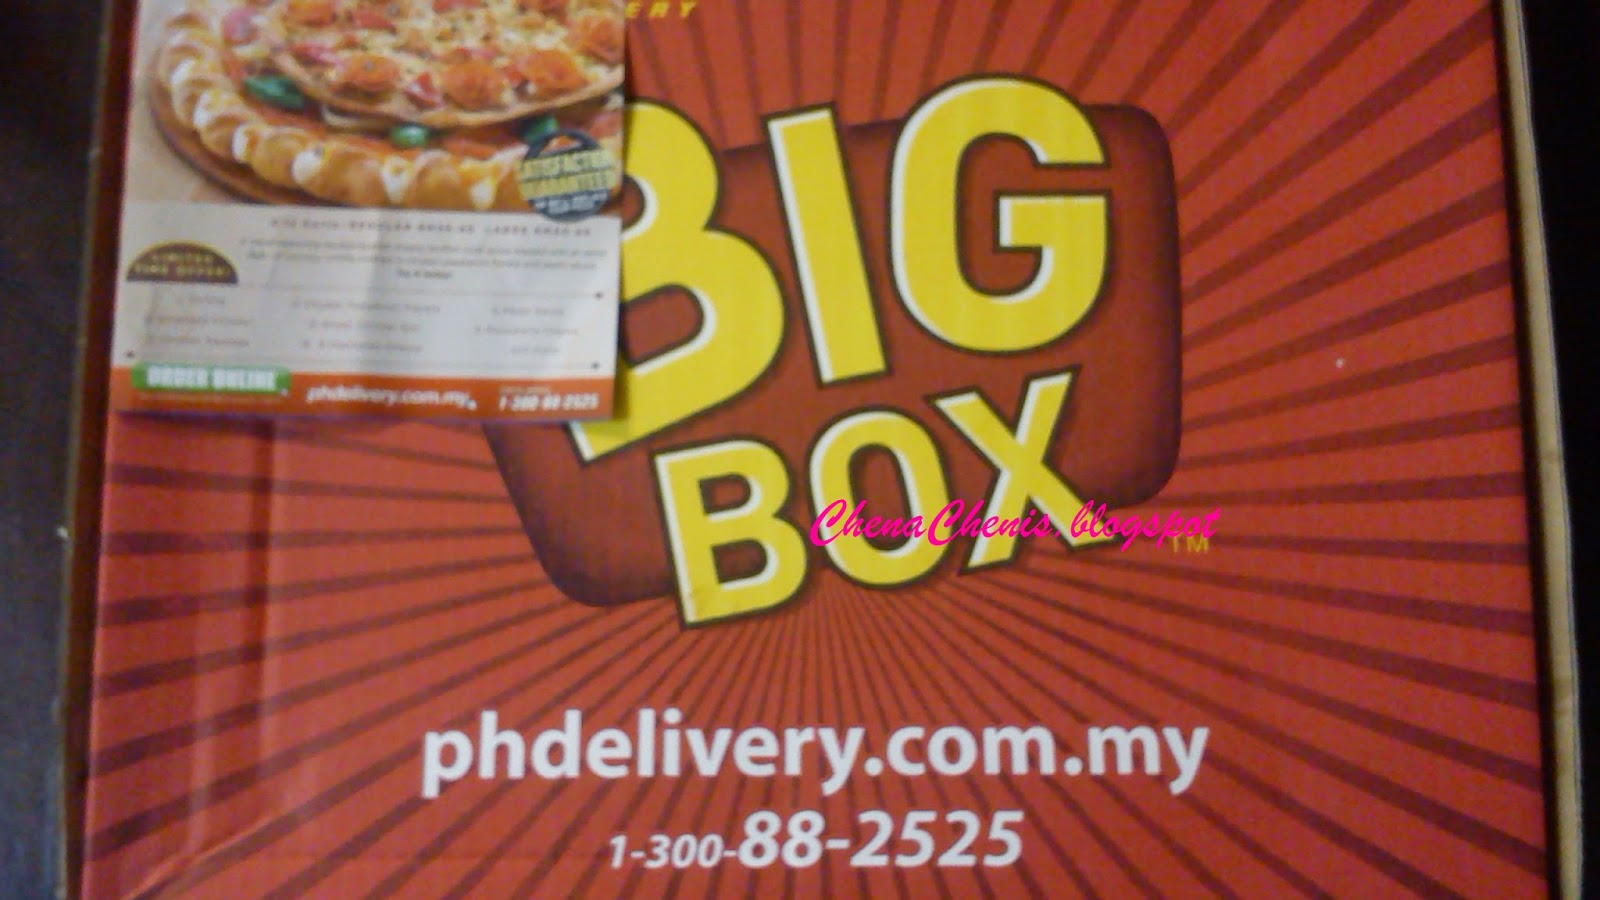 Pizza Hut Big Variety Box